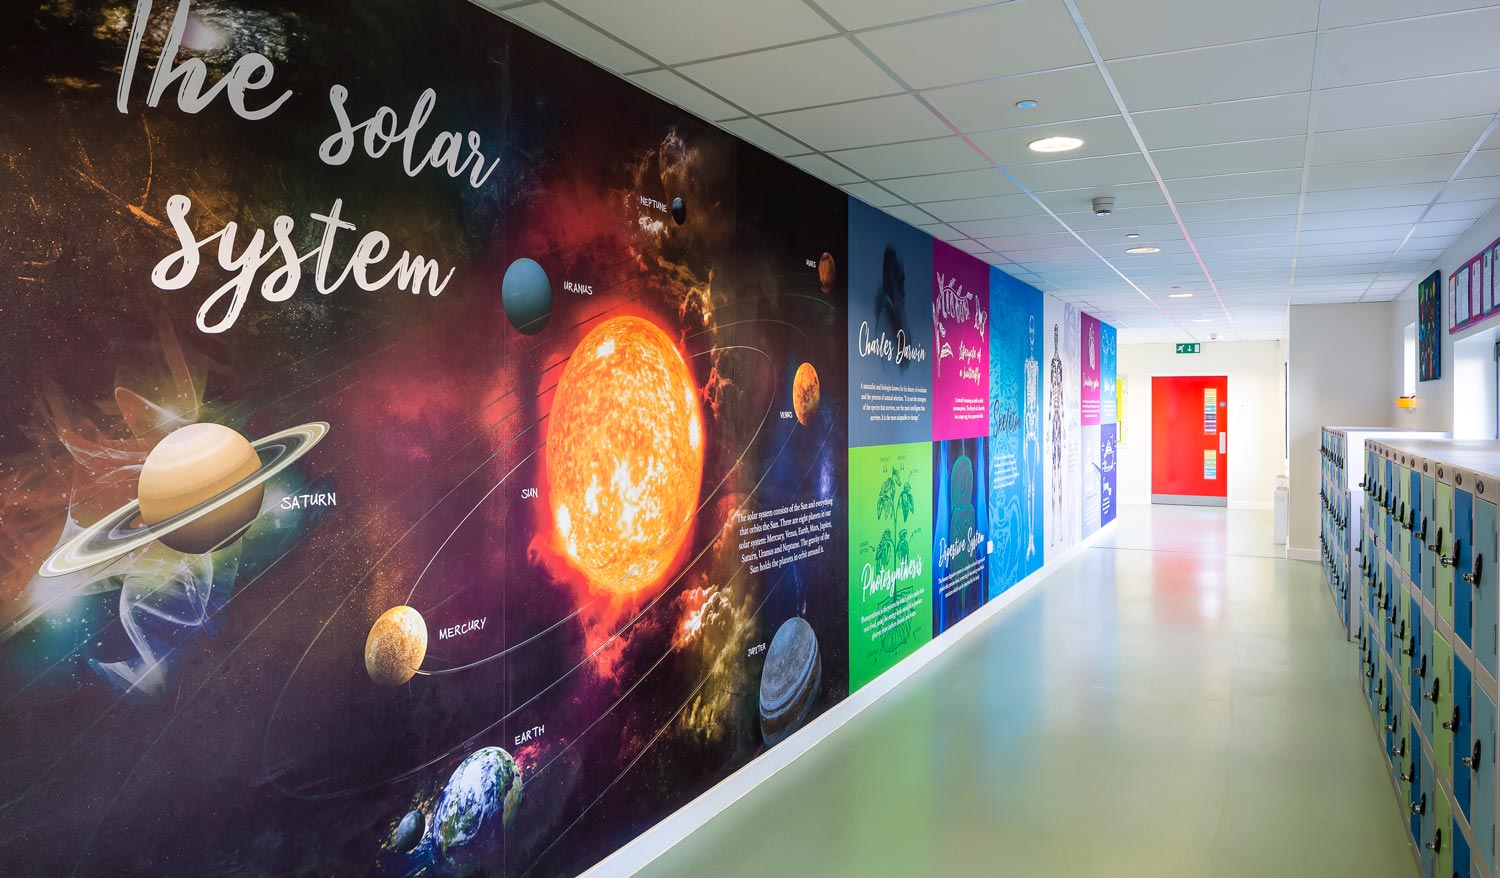 Corridor with Science wall, including the Solar System